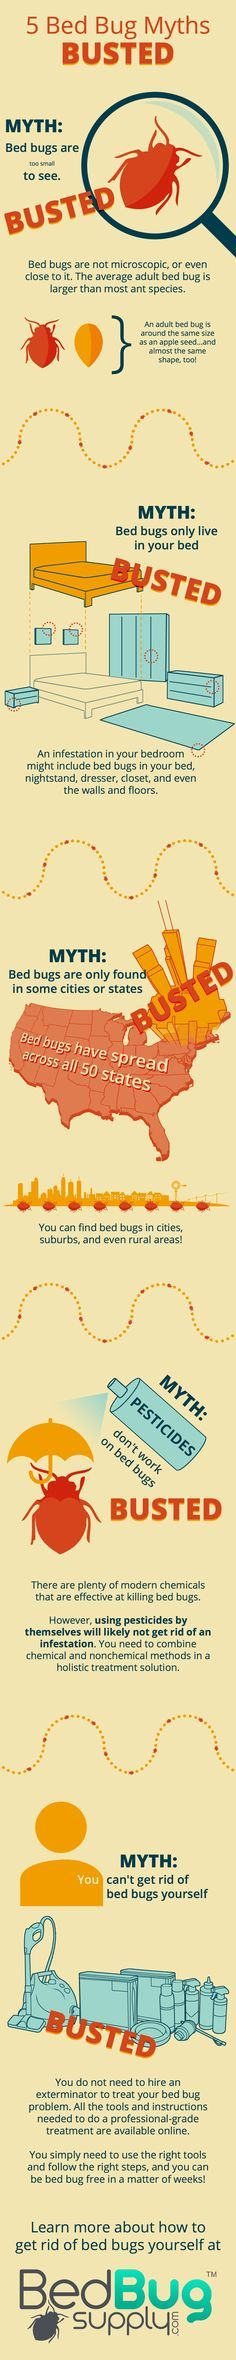 5 Bed Bug Myths BUSTED (Infographic)